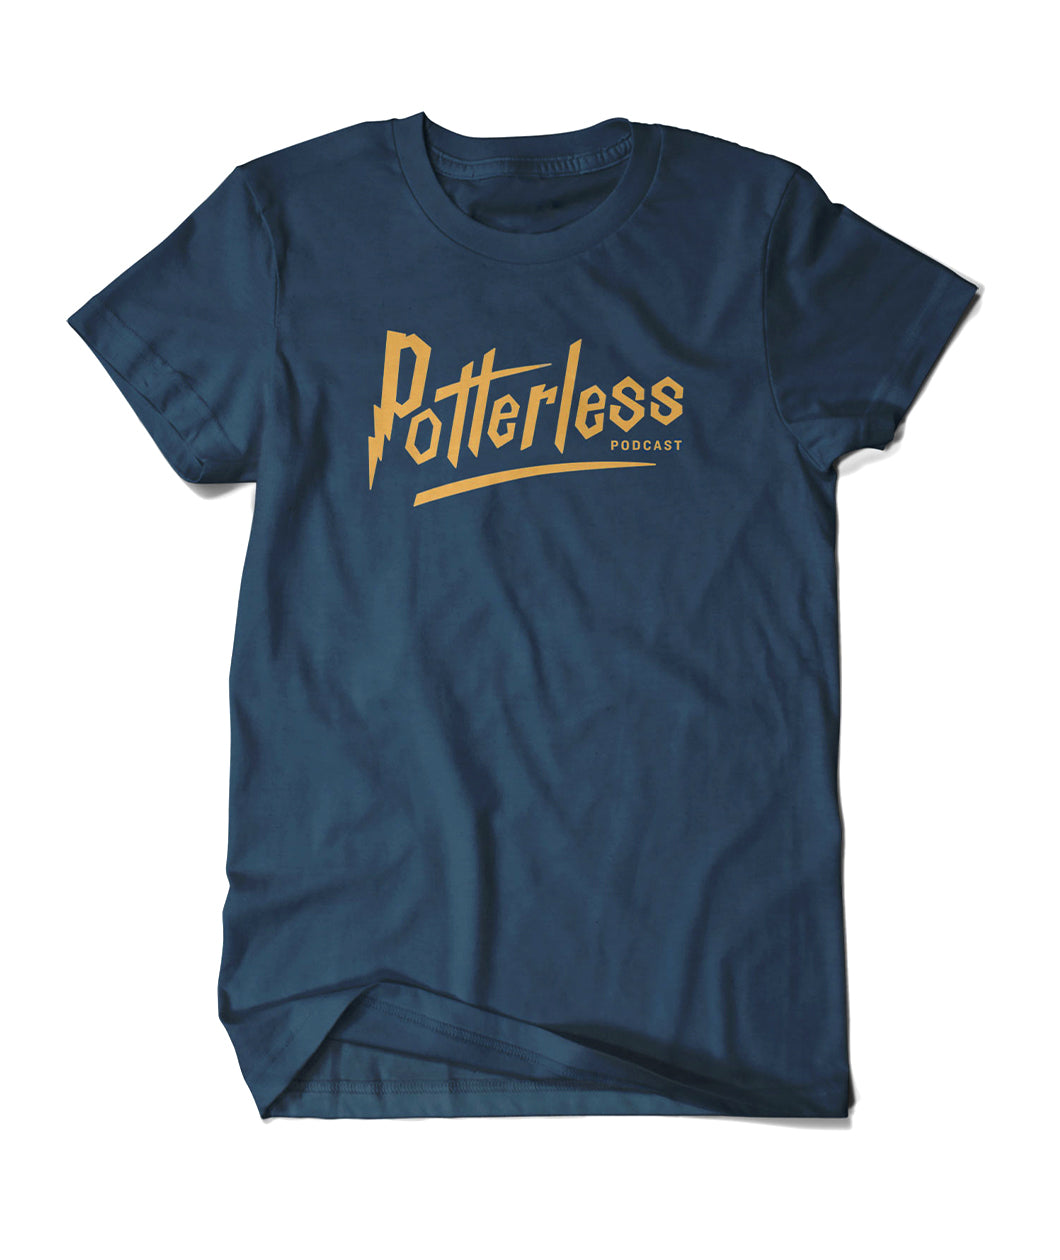 Potterless House T-shirt - Ravenclaw